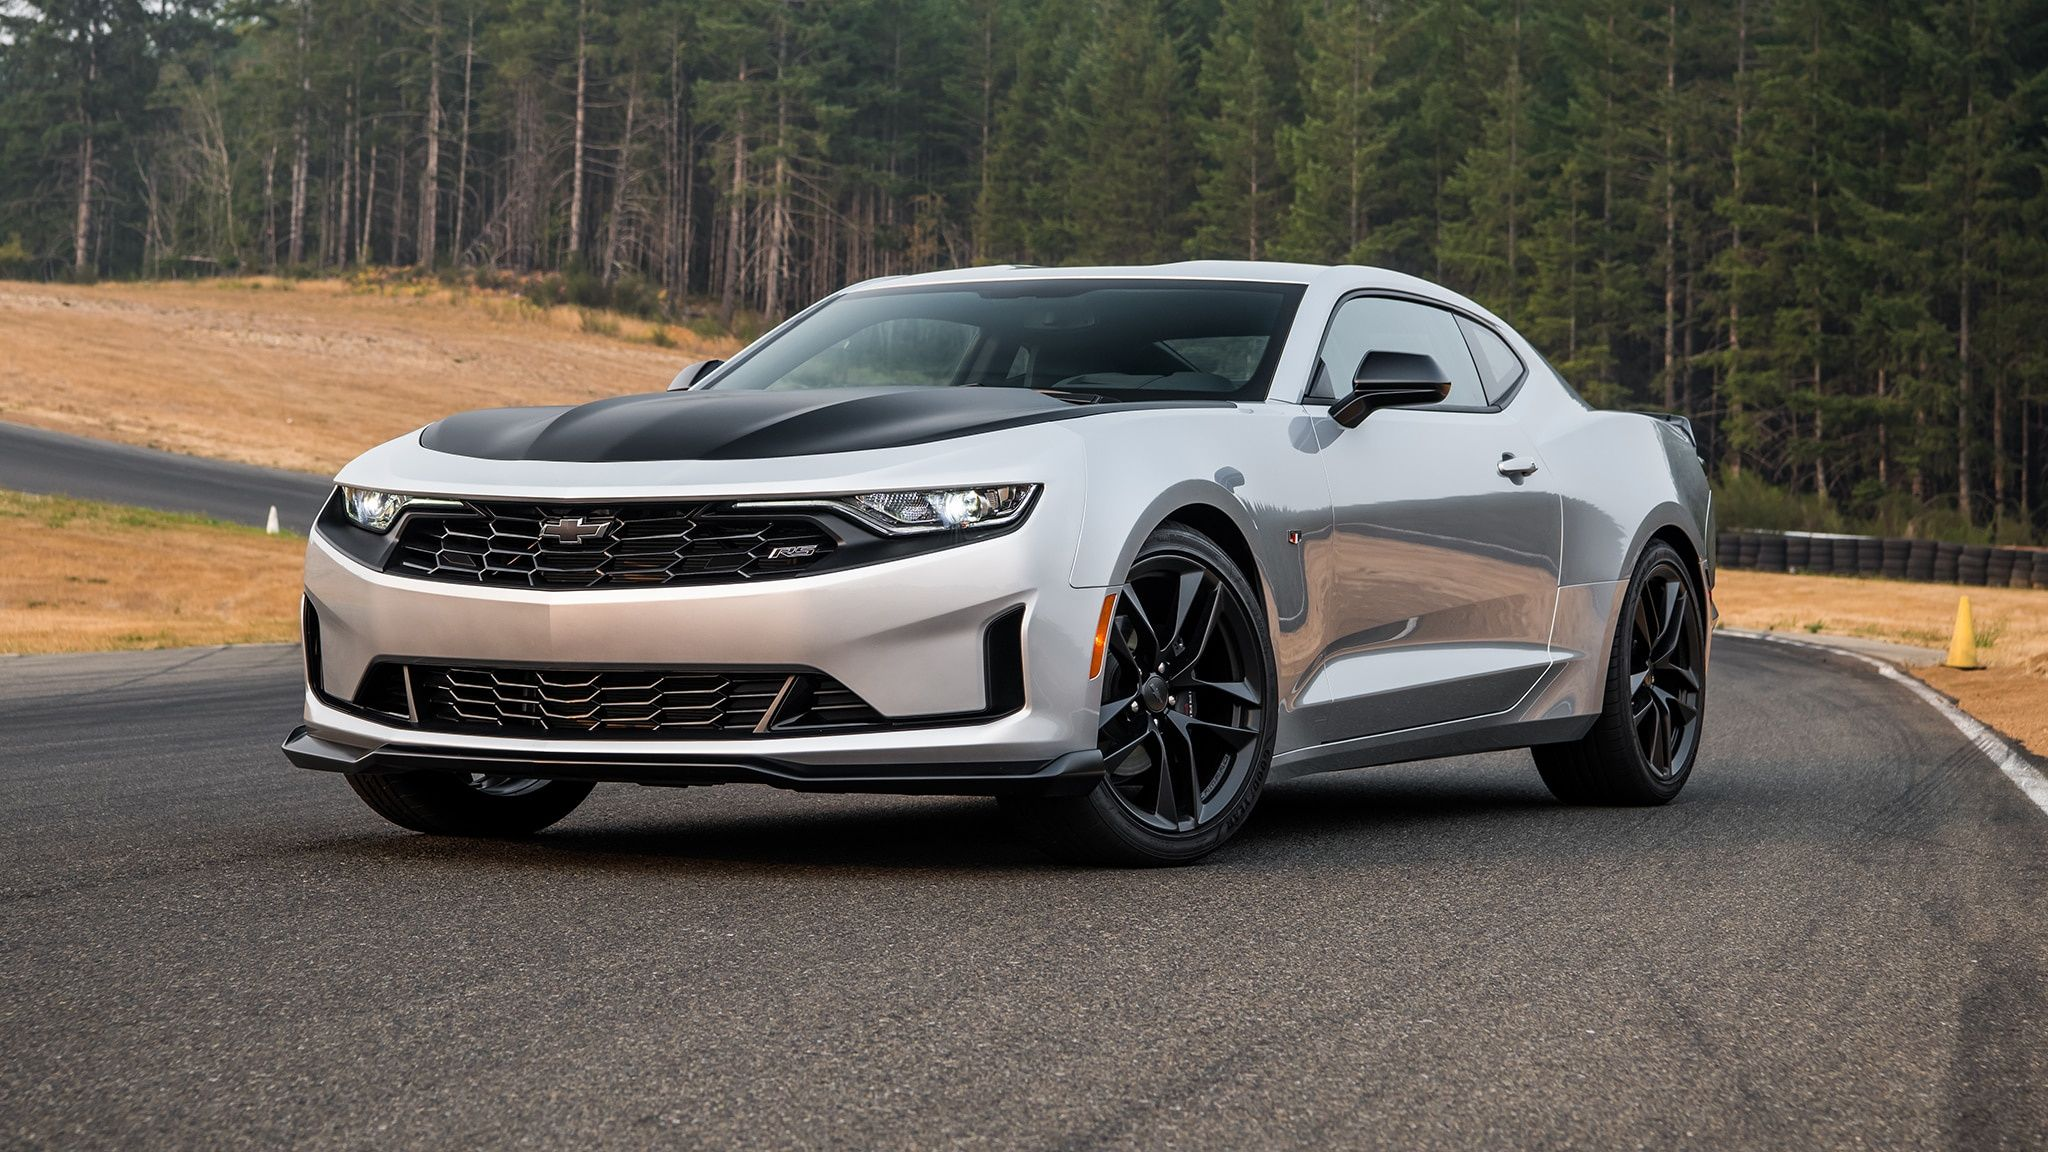 2019 Chevrolet Camaro Turbo 1le First Drive Point Me To The Corners Chevrolet Camaro Chevrolet 2019 Camaro